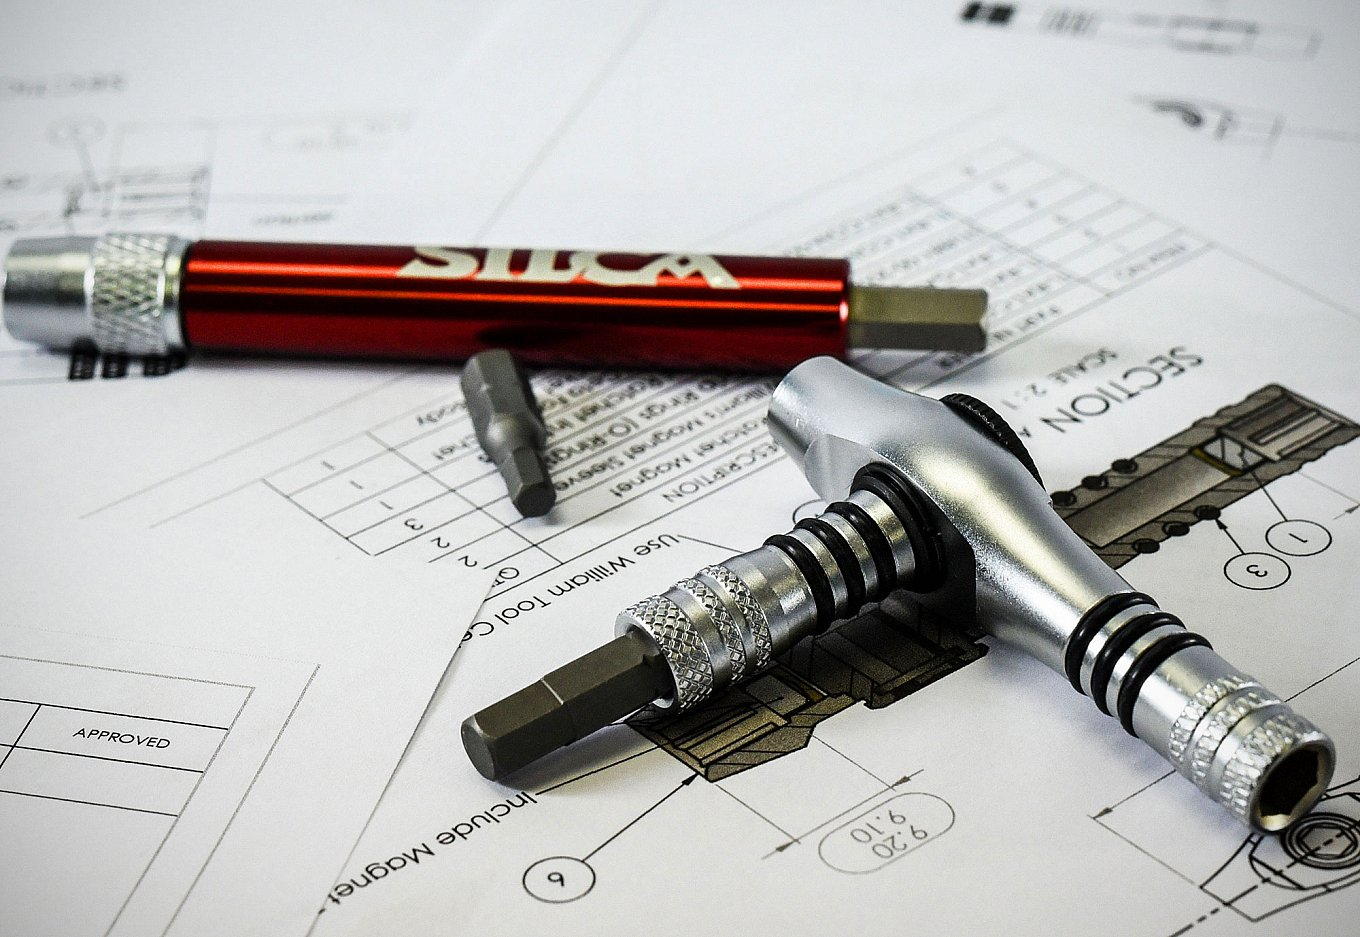 t-ratchet-and-ti-torque-tool-by-silca-4